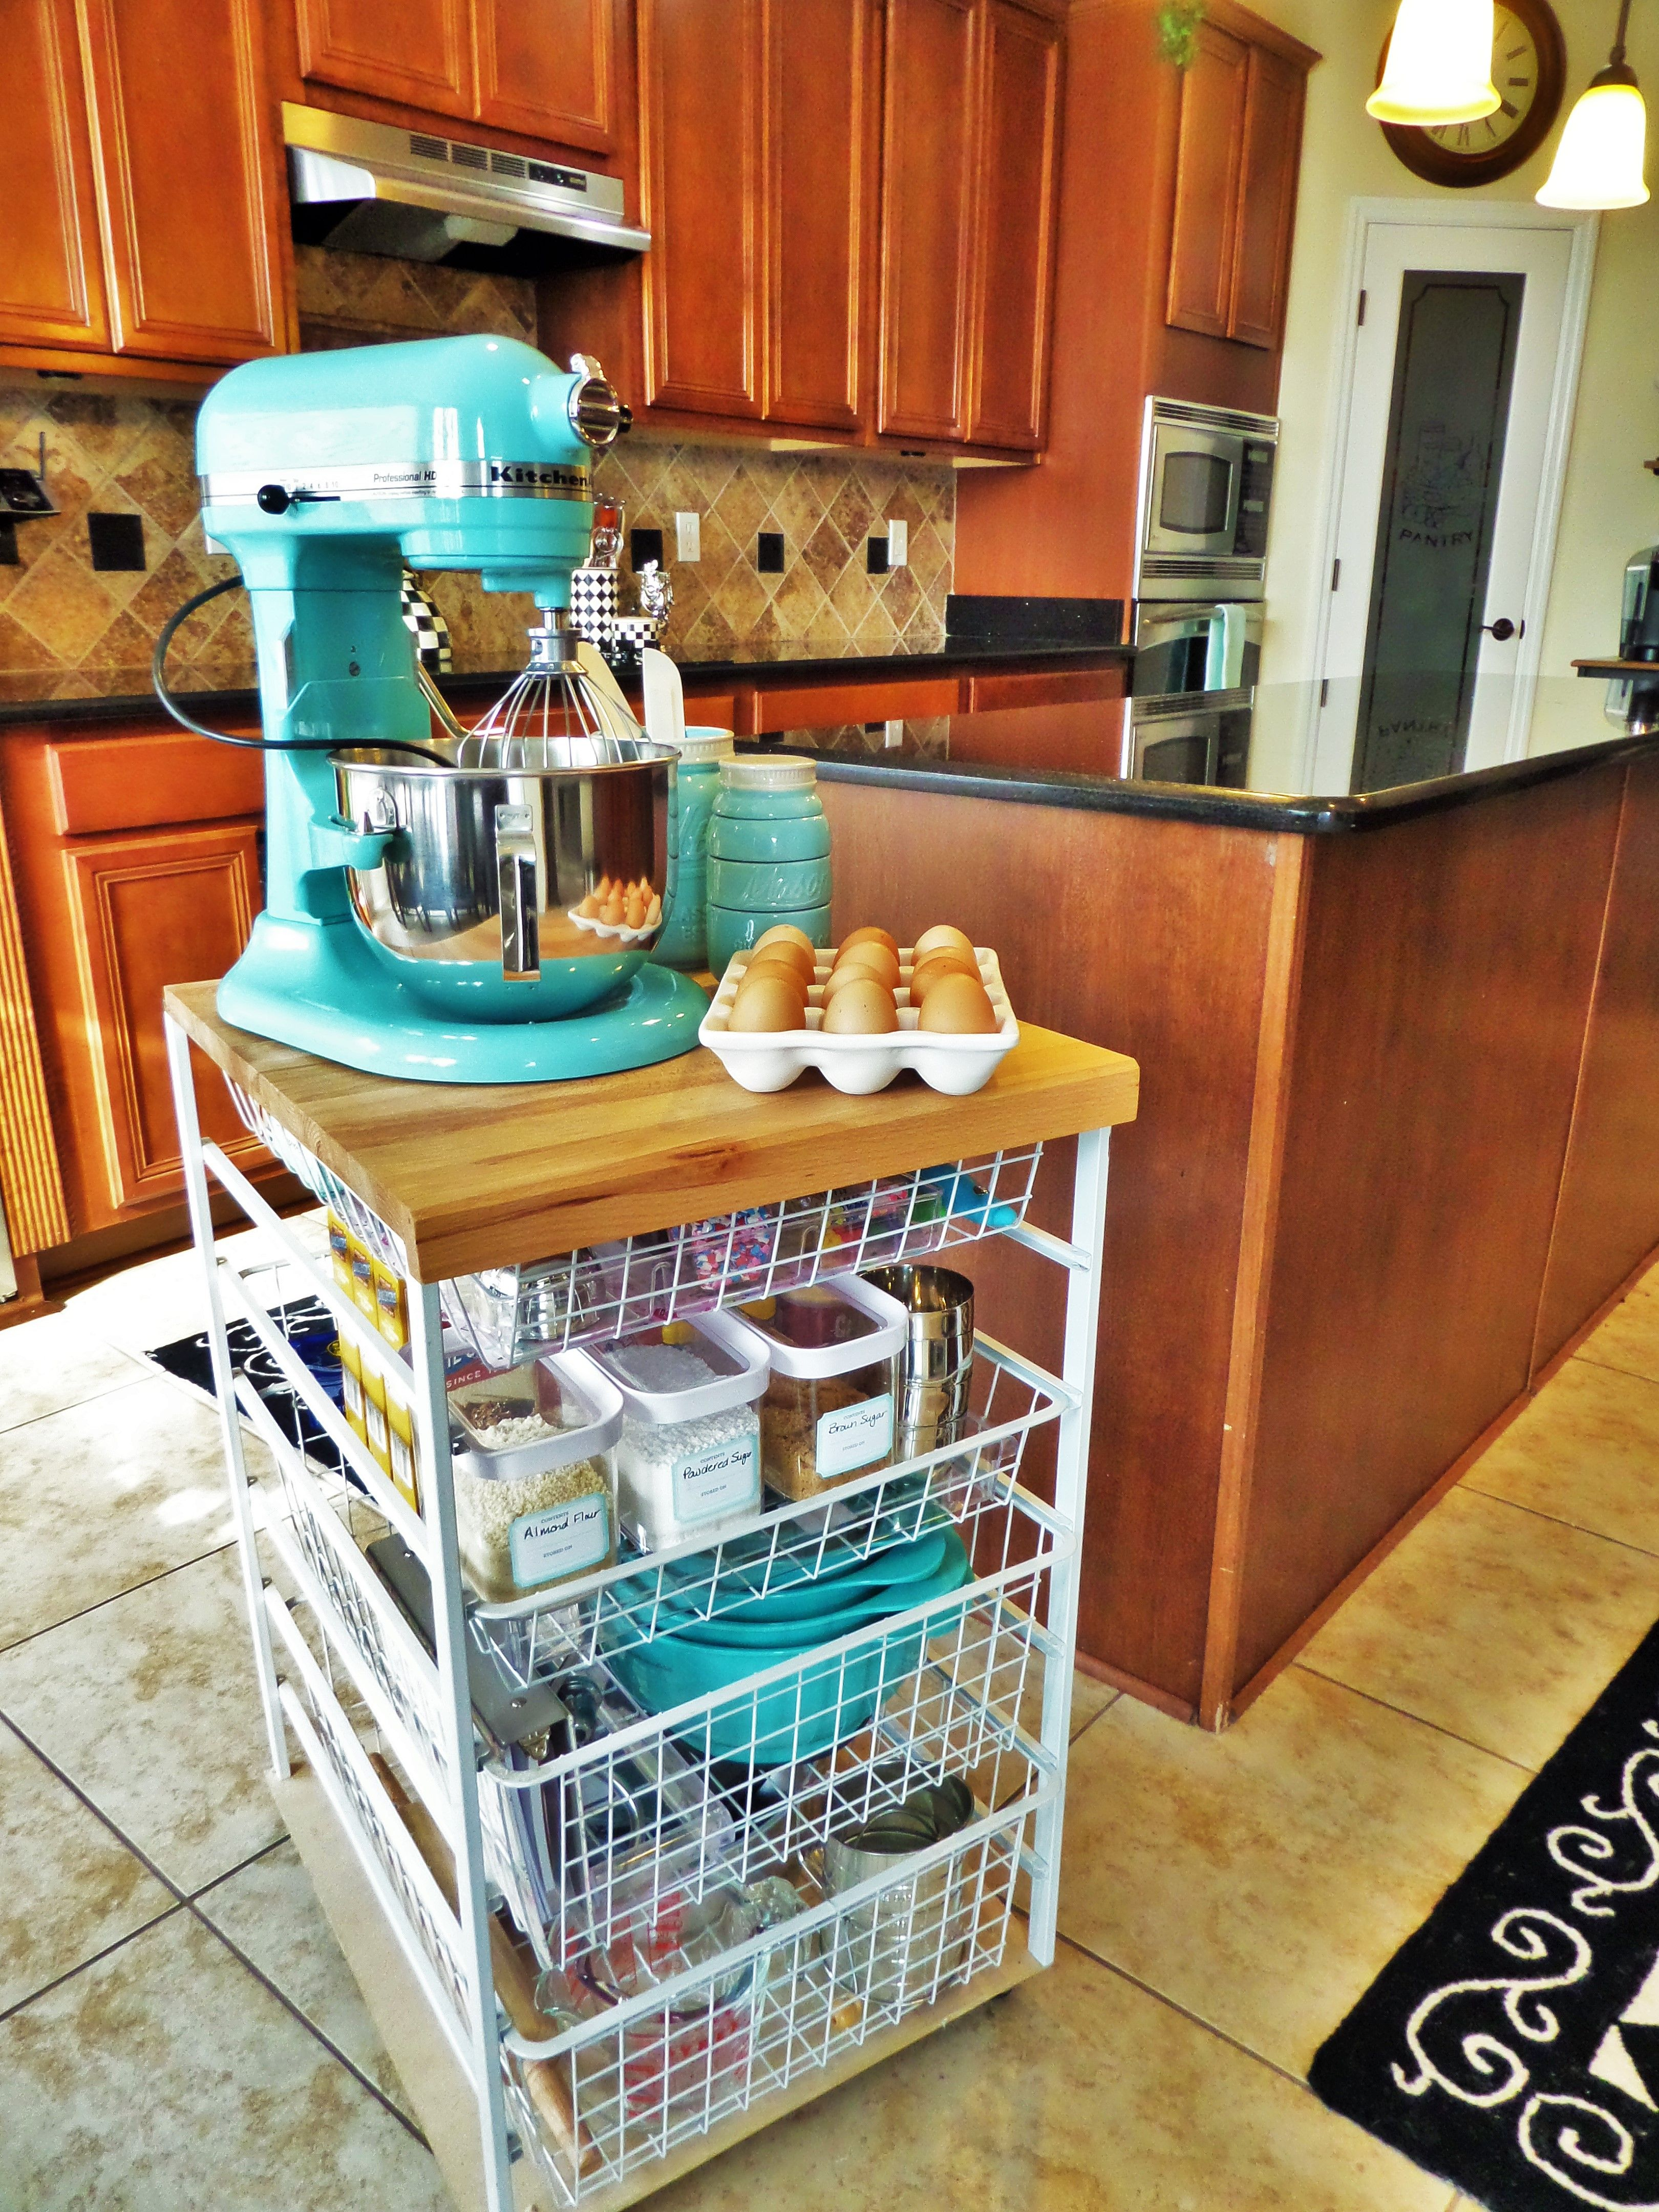 Ikea Kitchen Storage Cart Baking Station A Great Use For An Ikea Cart Couldnt Use The